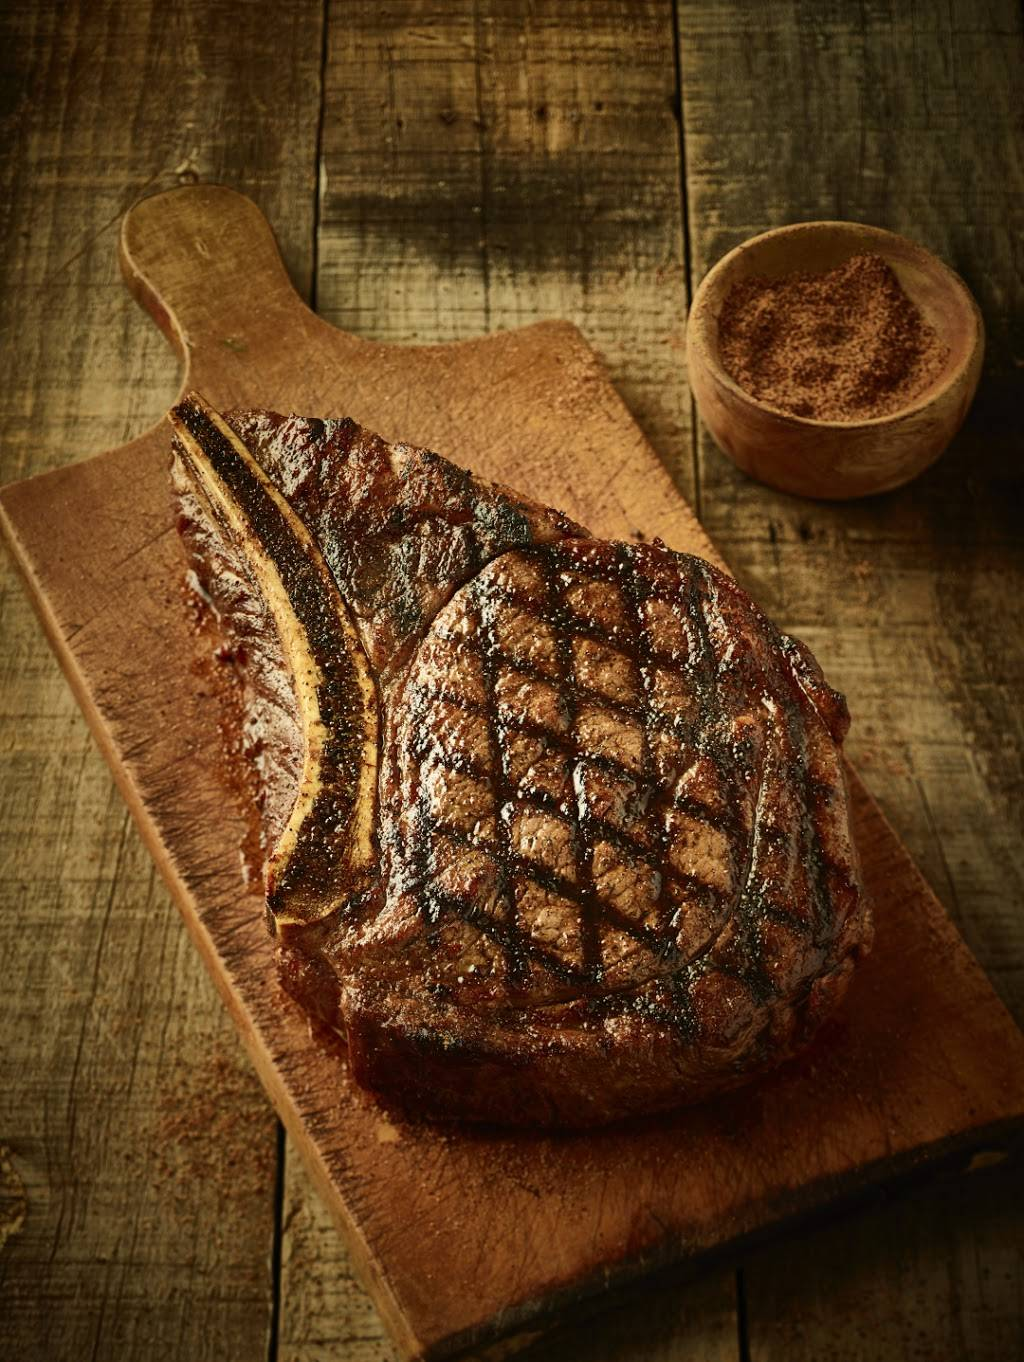 Outback Steakhouse - meal takeaway  | Photo 7 of 9 | Address: 813 Airport Fwy, Hurst, TX 76053, USA | Phone: (817) 285-0004